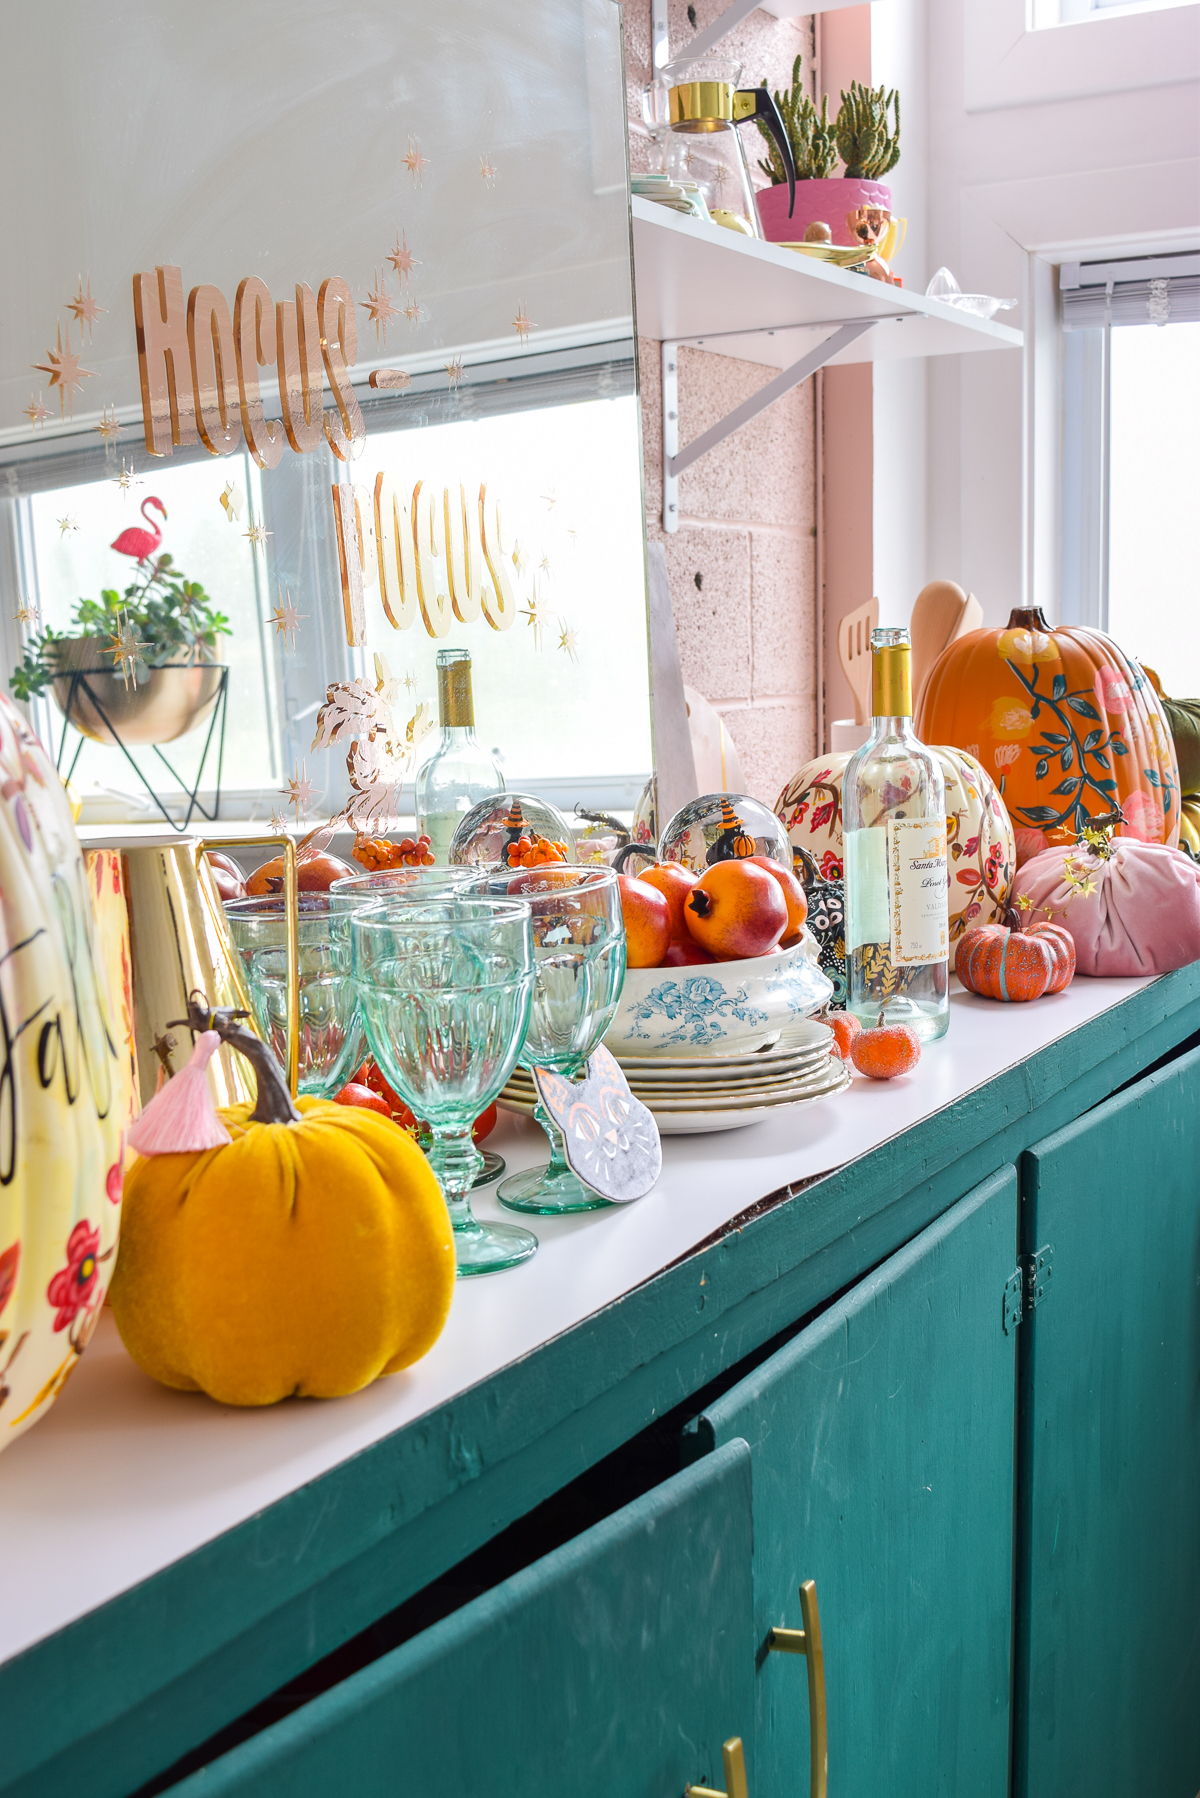 countertop decorated for fall with colourful pumpkins